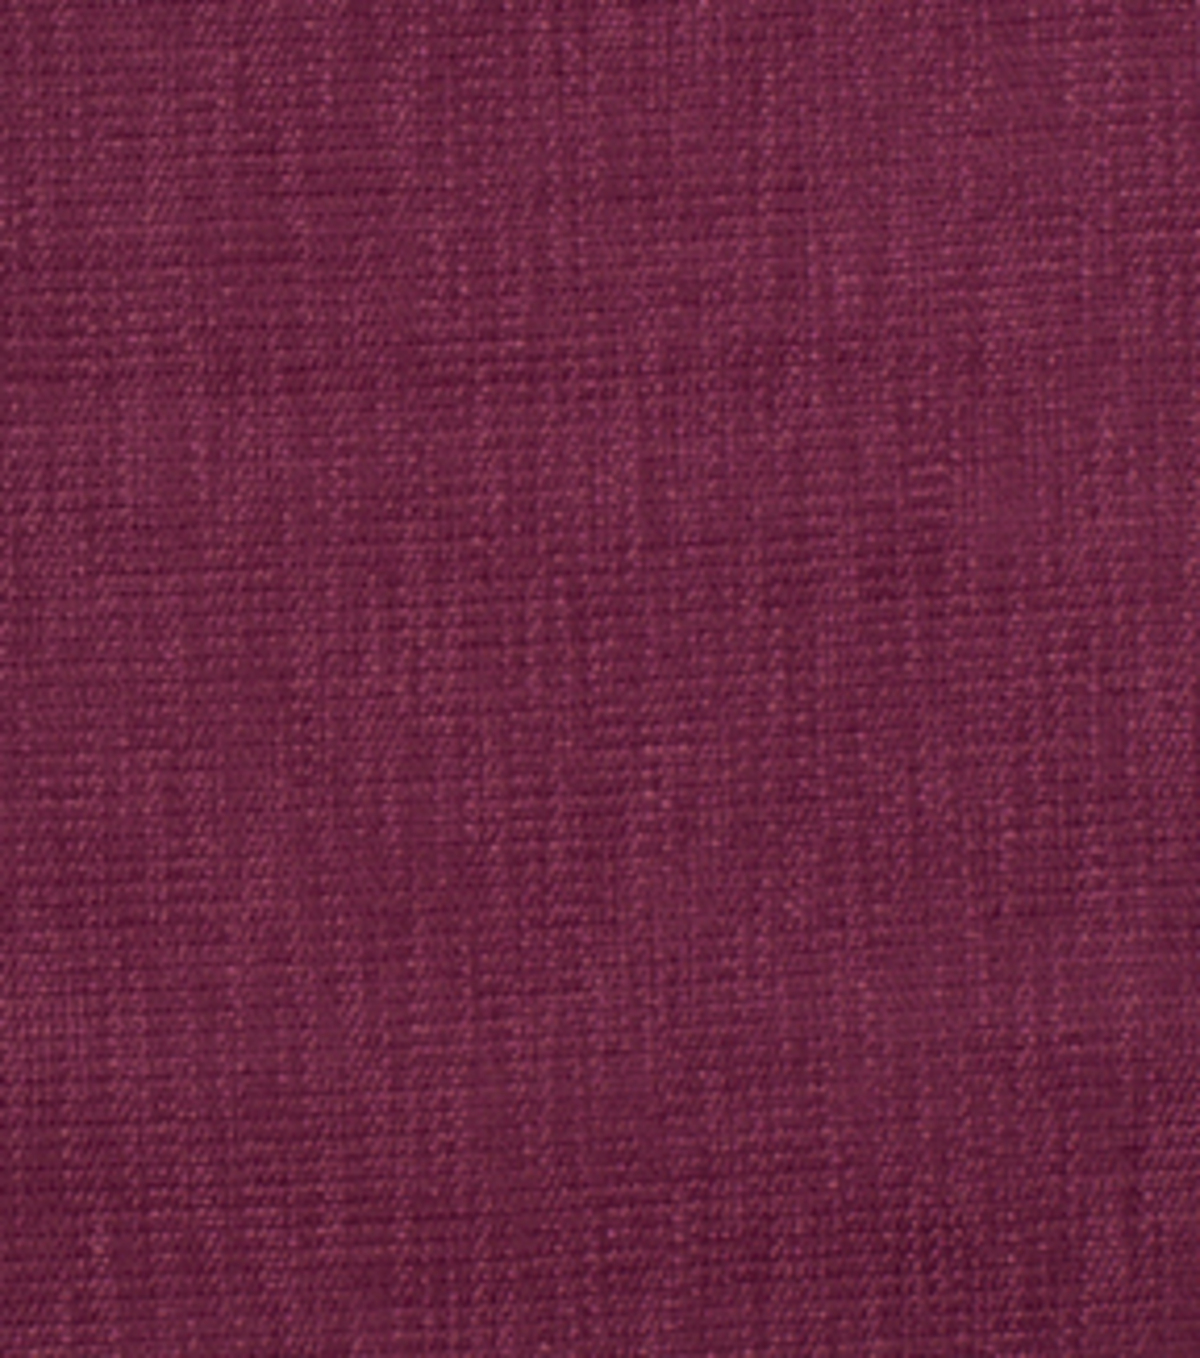 Home Decor 8\u0022x8\u0022 Fabric Swatch-Richloom Studio Hogan Berry